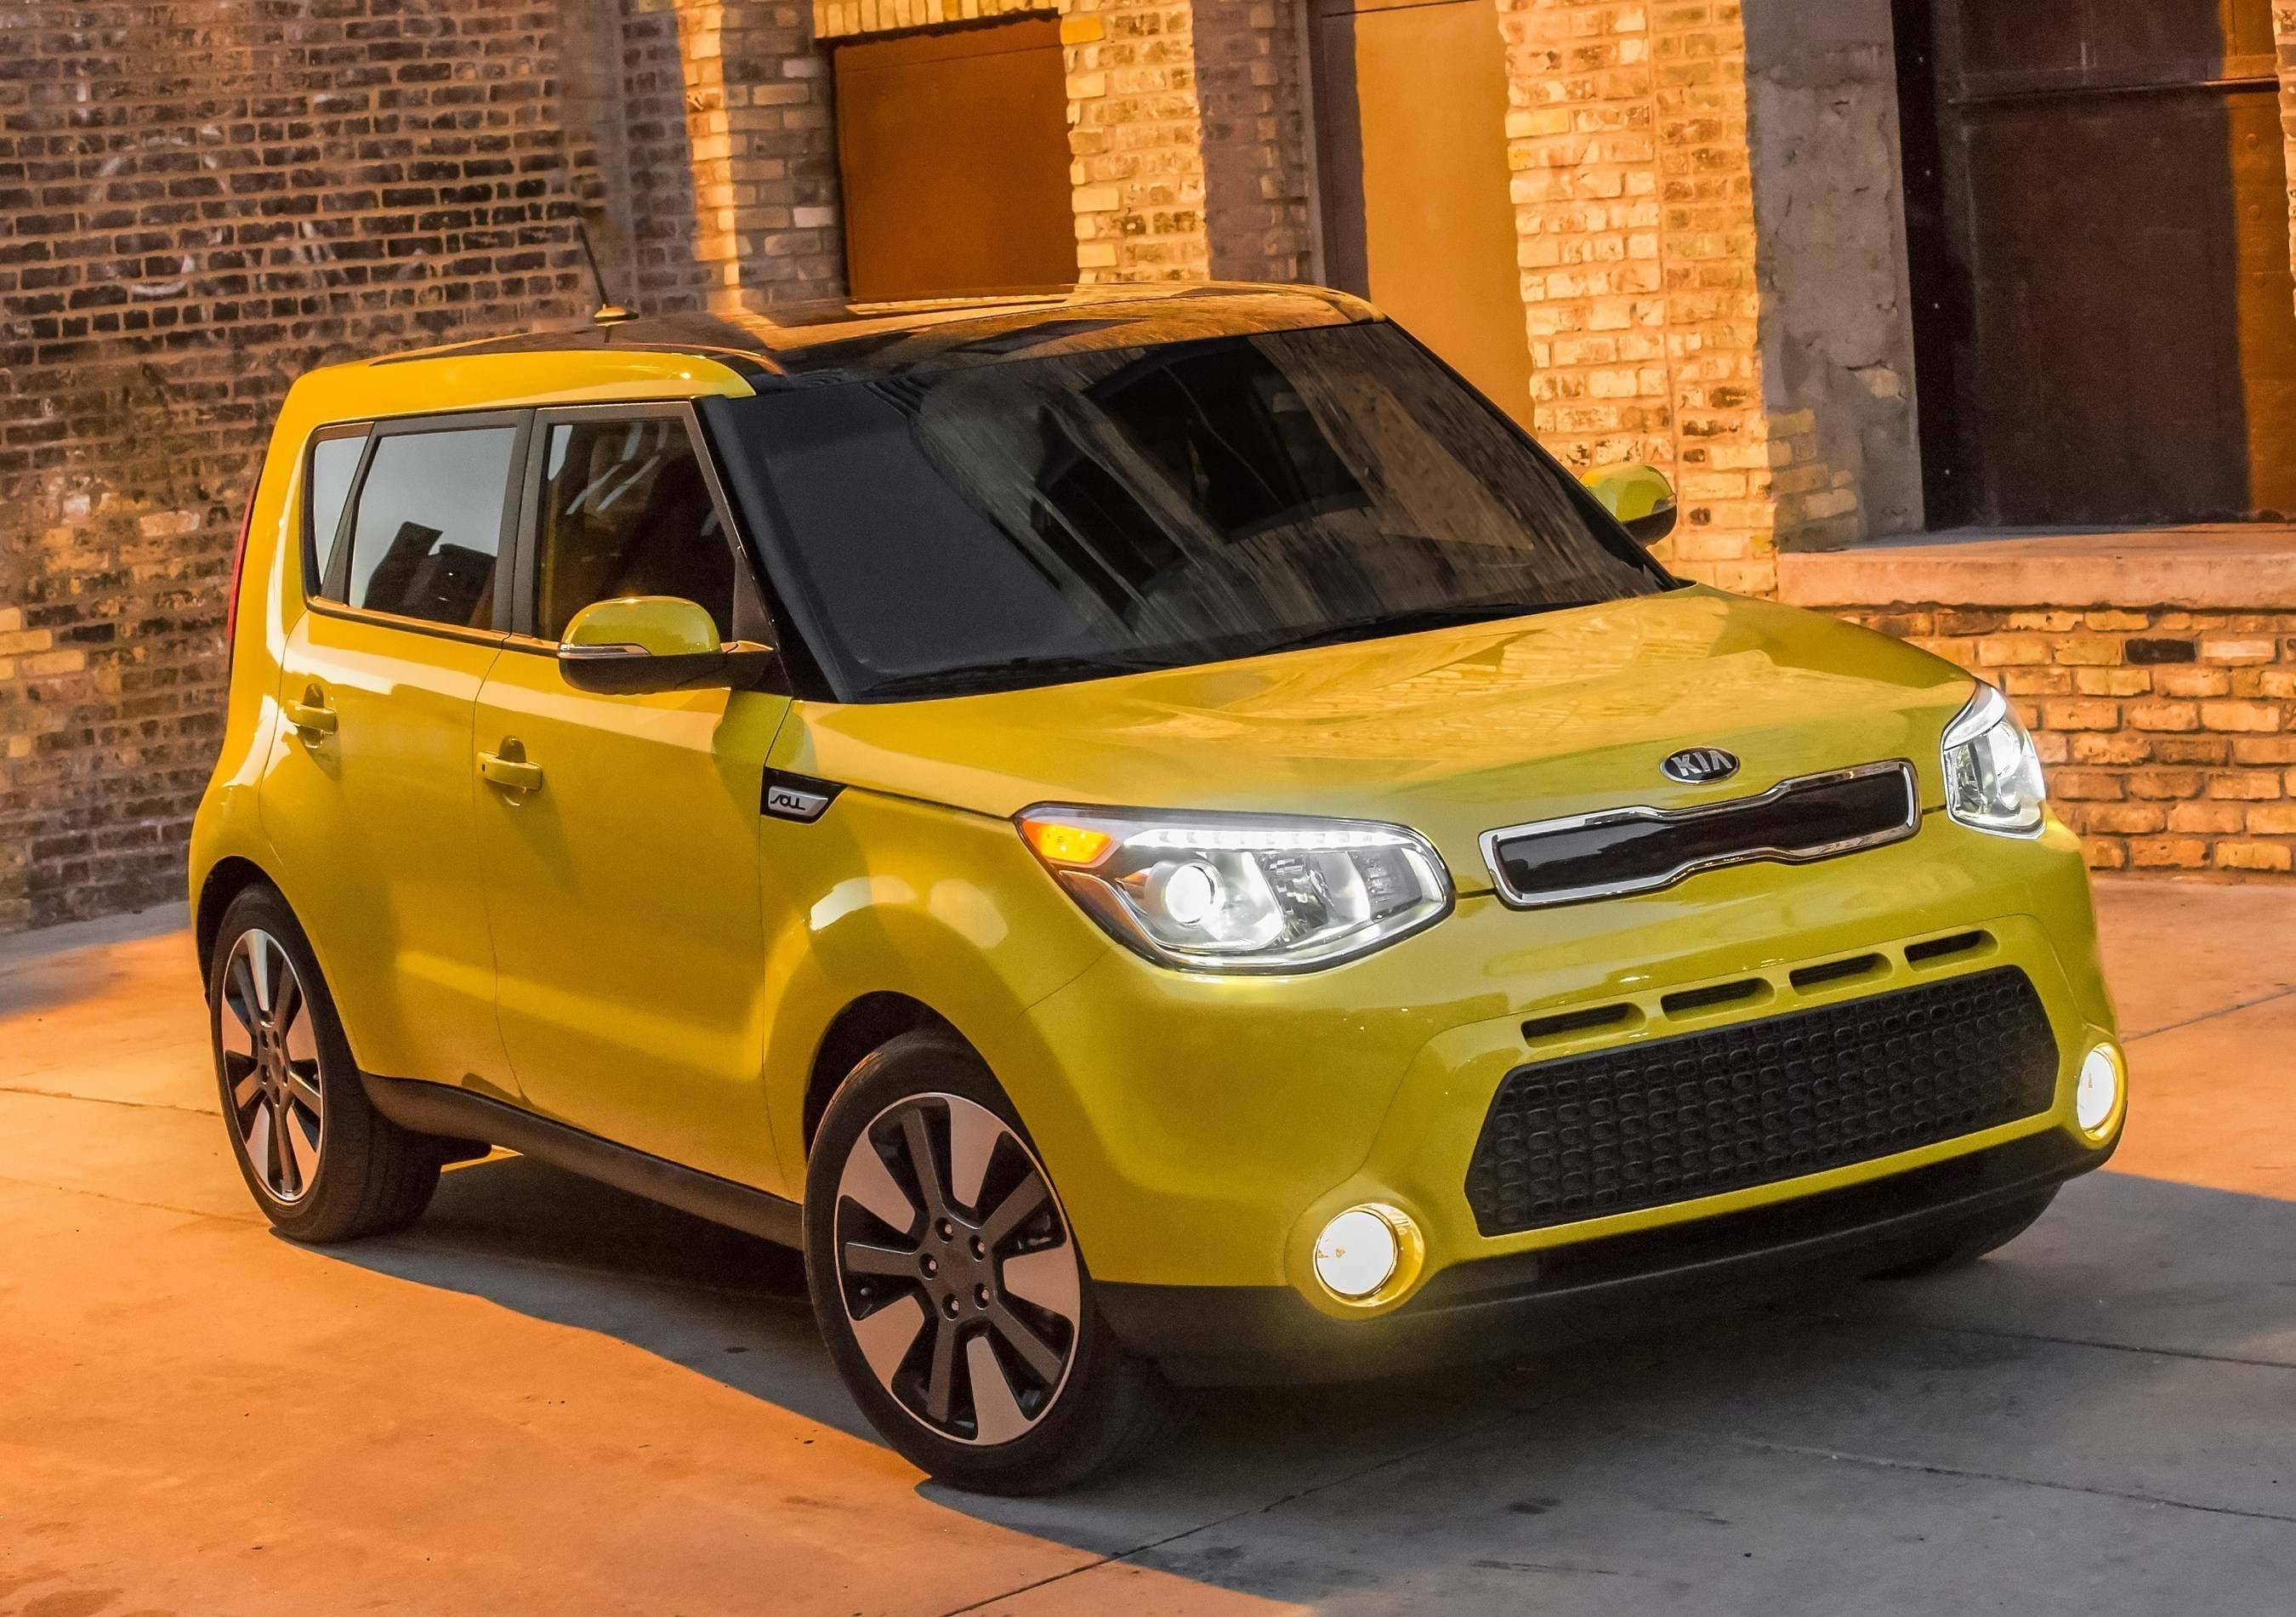 kia motors ranked number one in the auto industry for initial